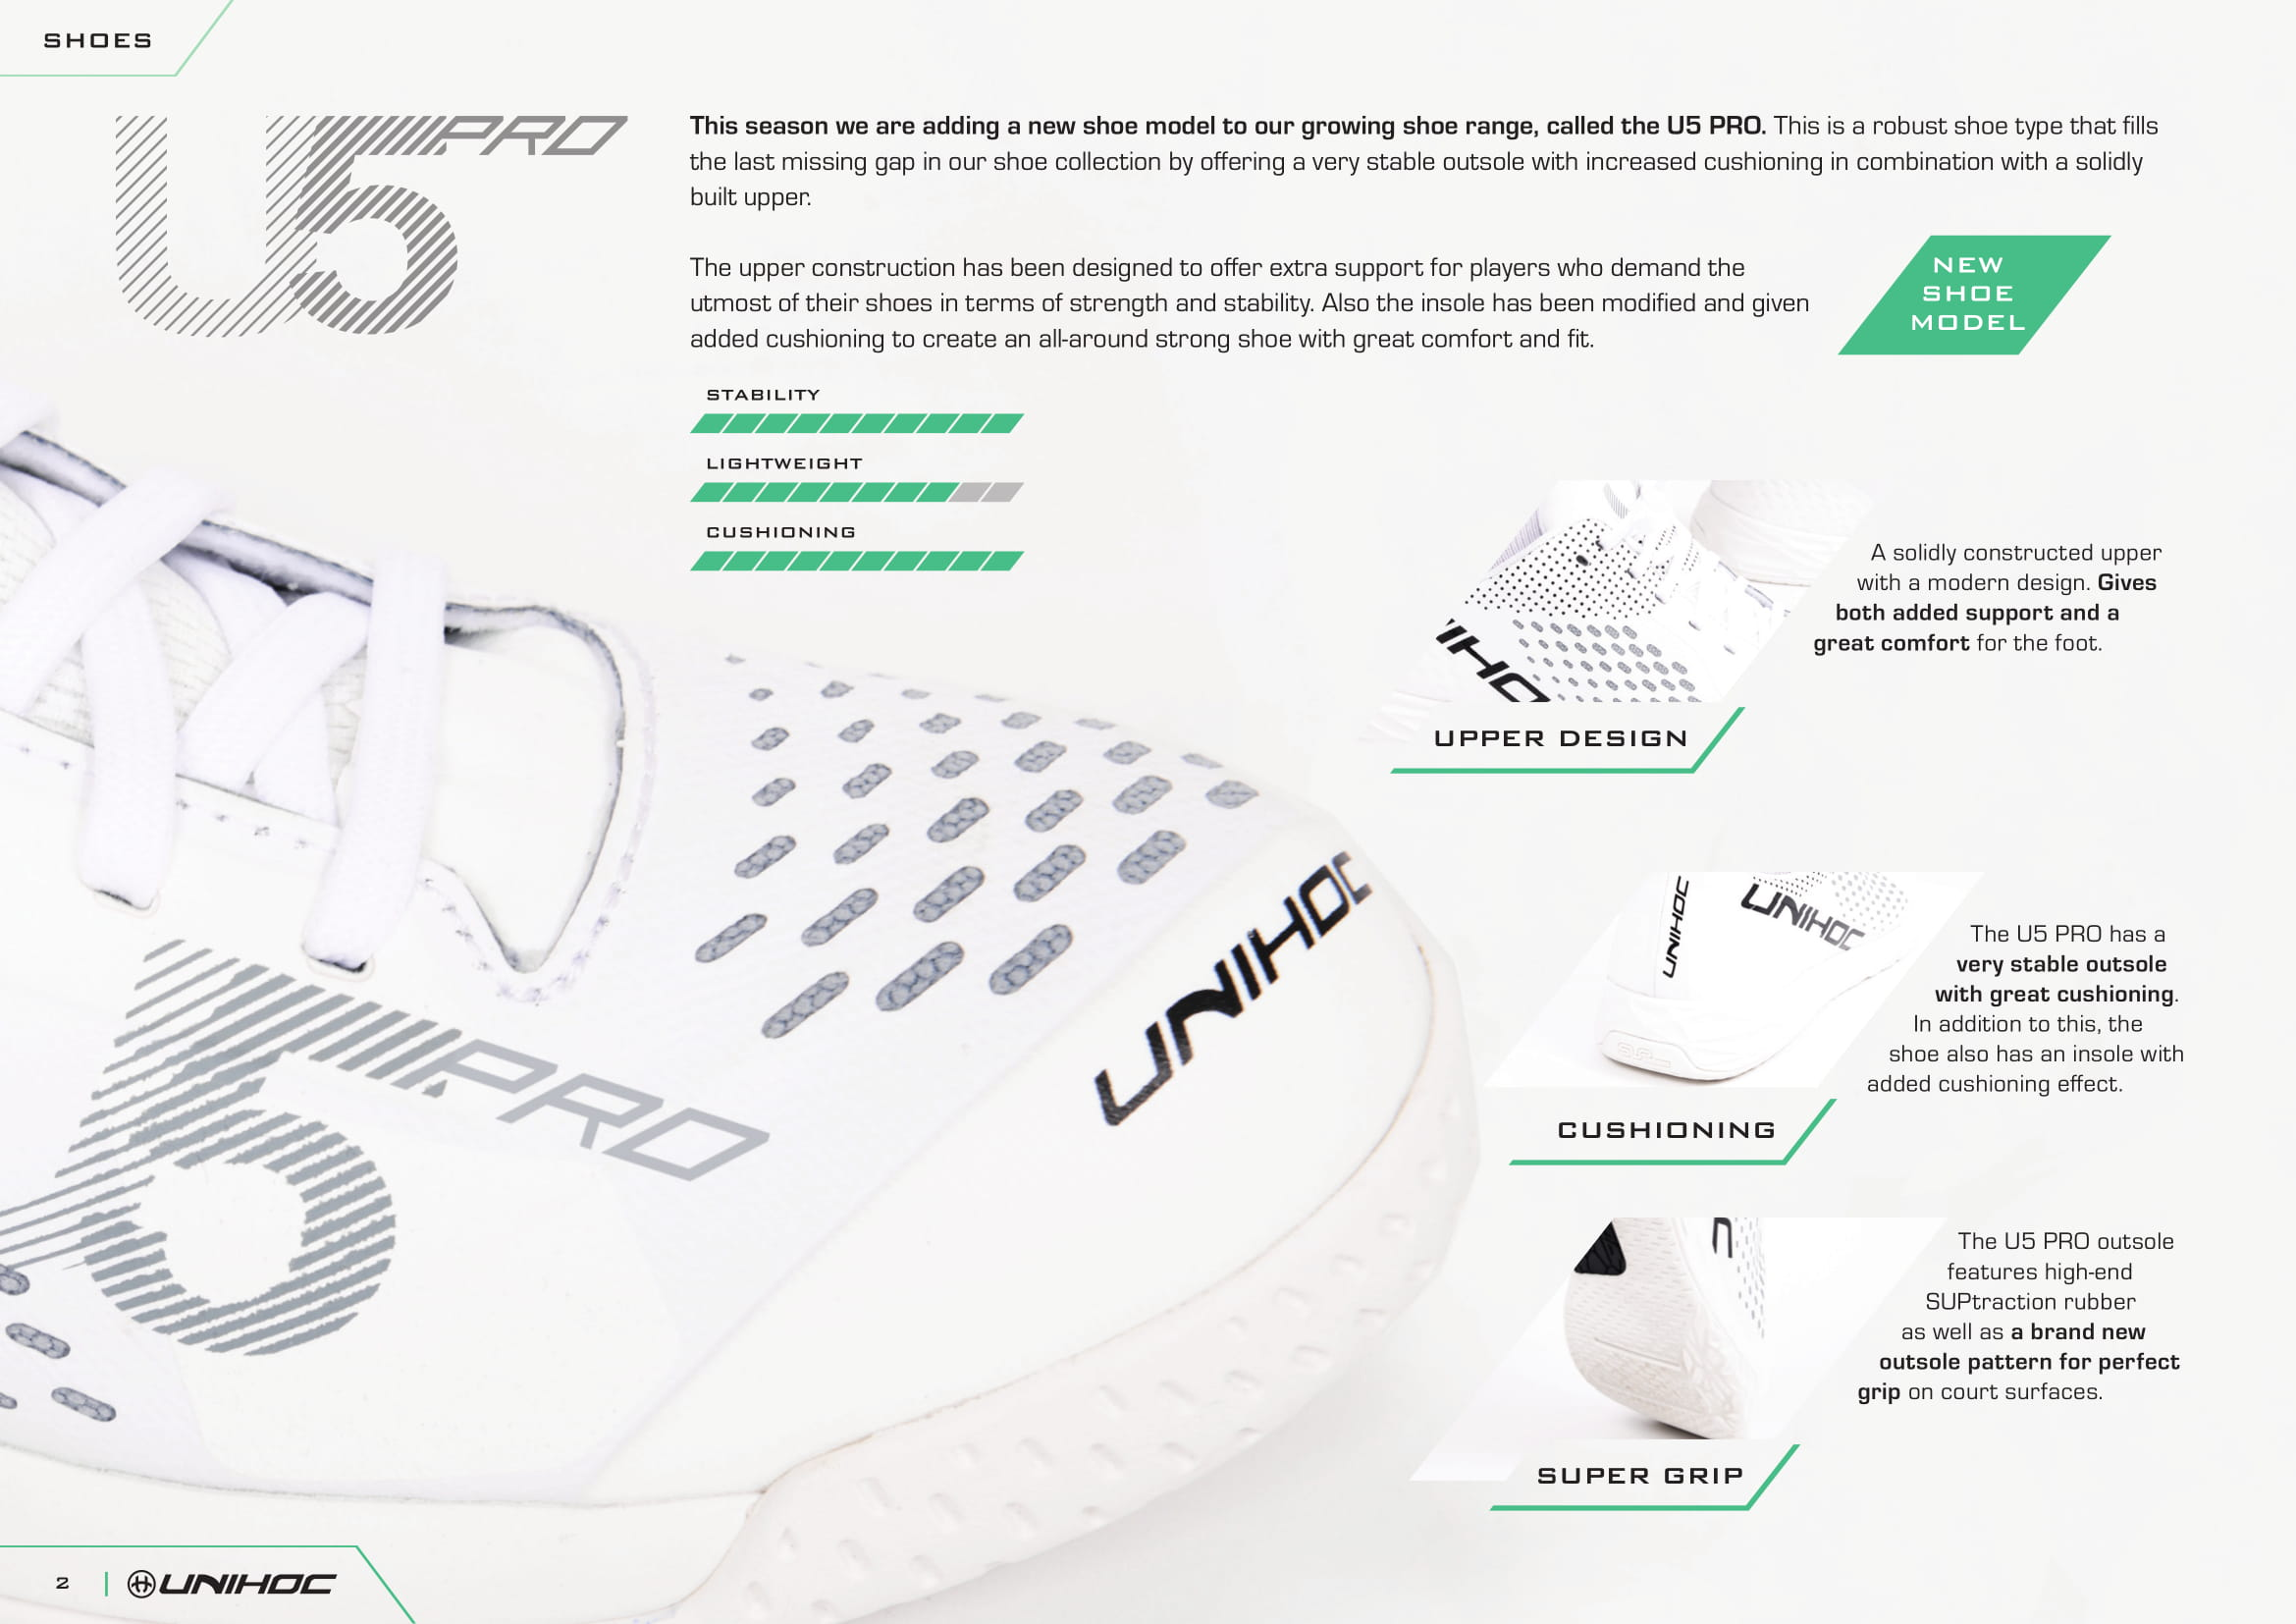 UNIHOC SHOES FOLDER 19-20-02.jpg